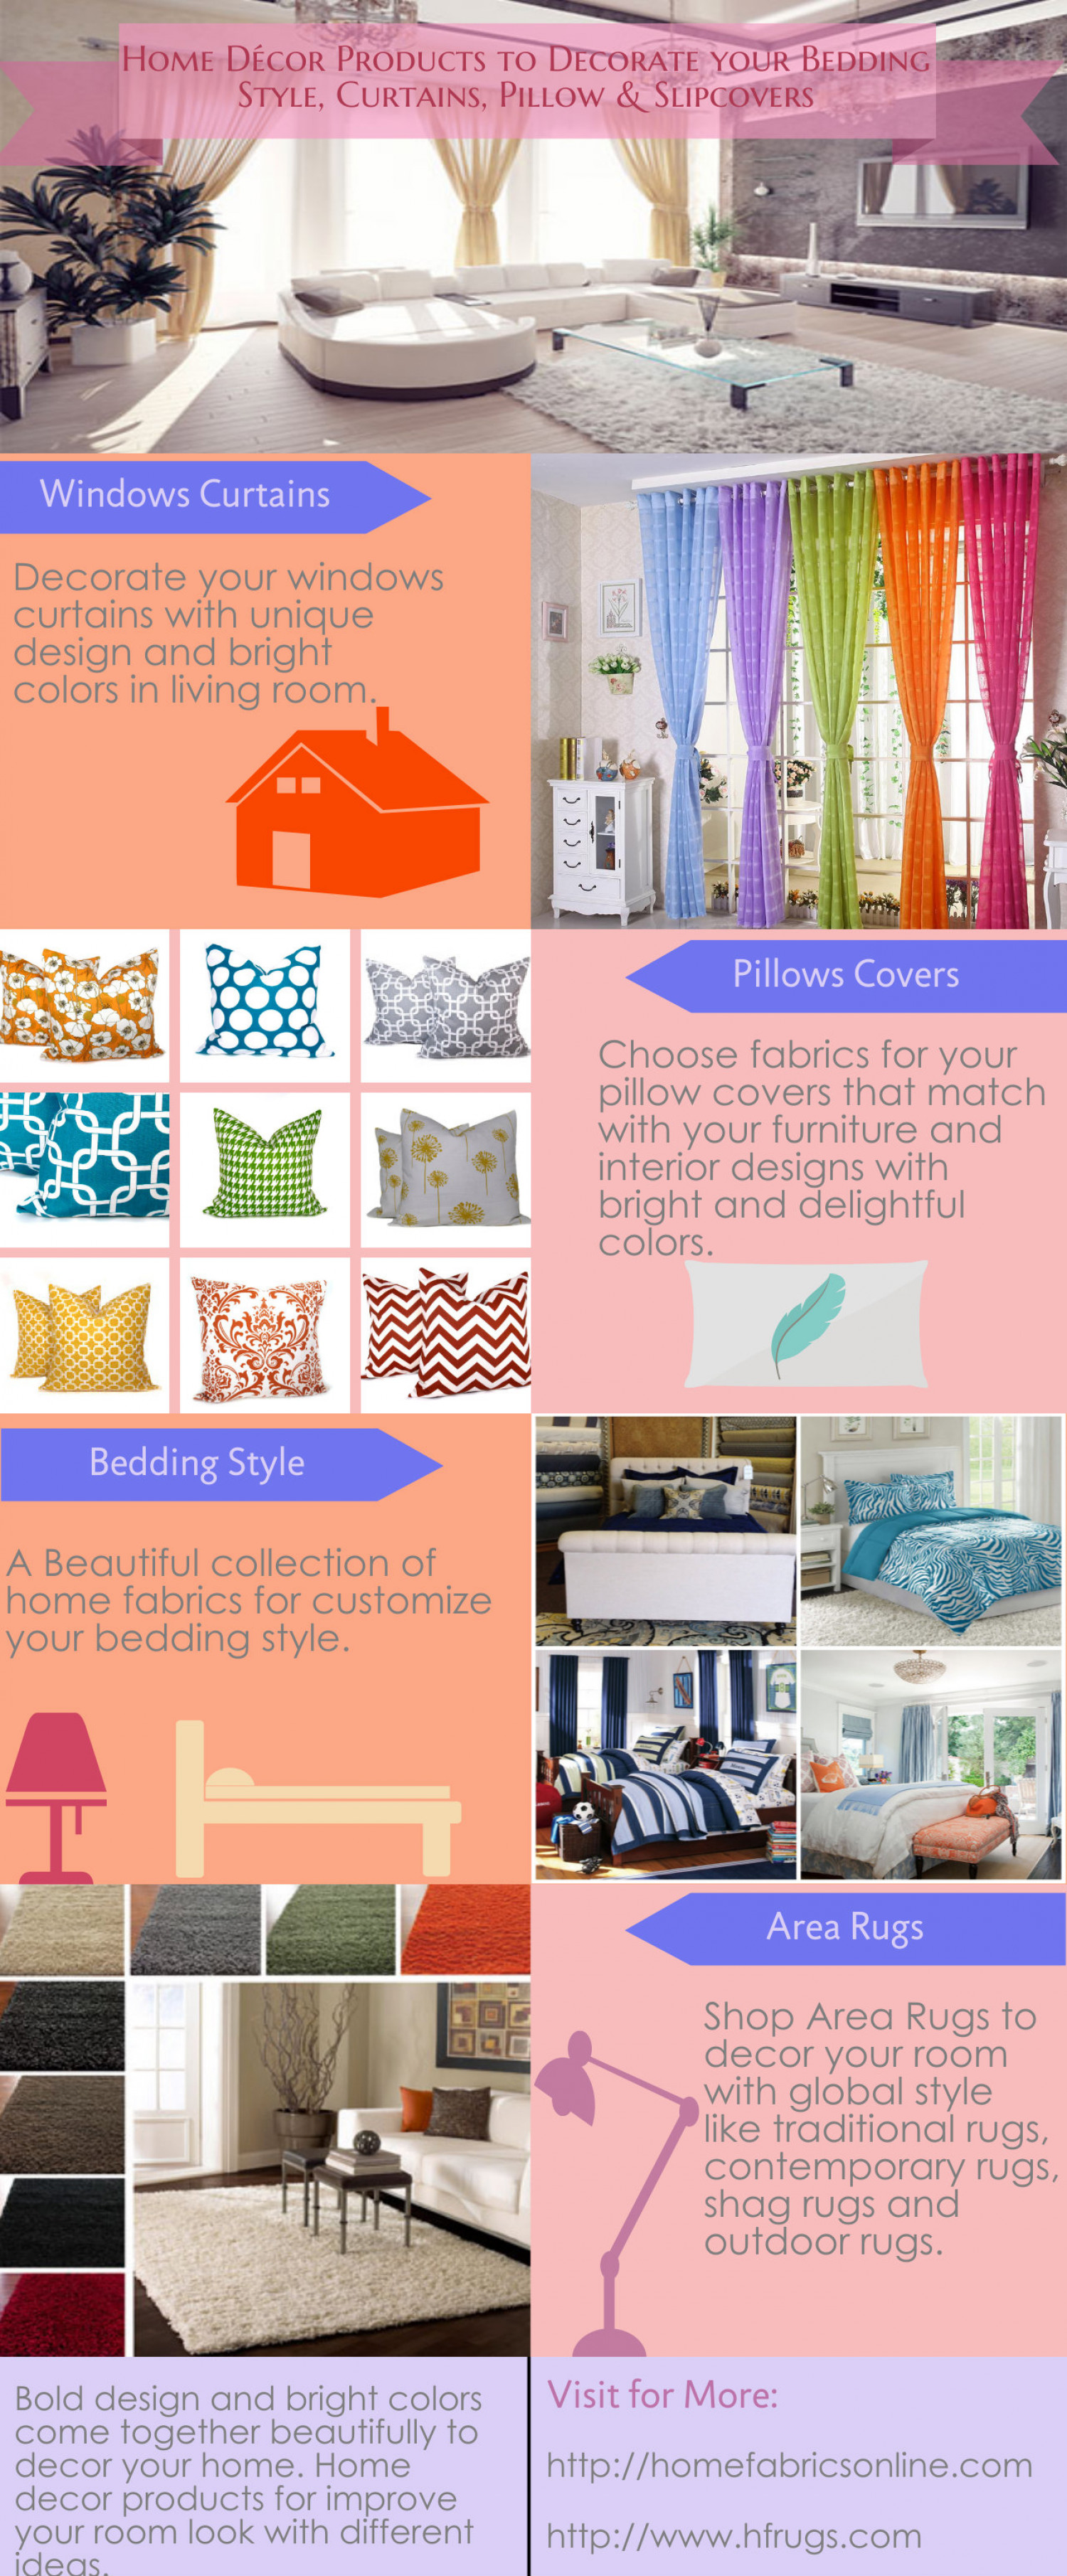 Home Decor Products To Decorate Your Bedding Style Curtains Pillow